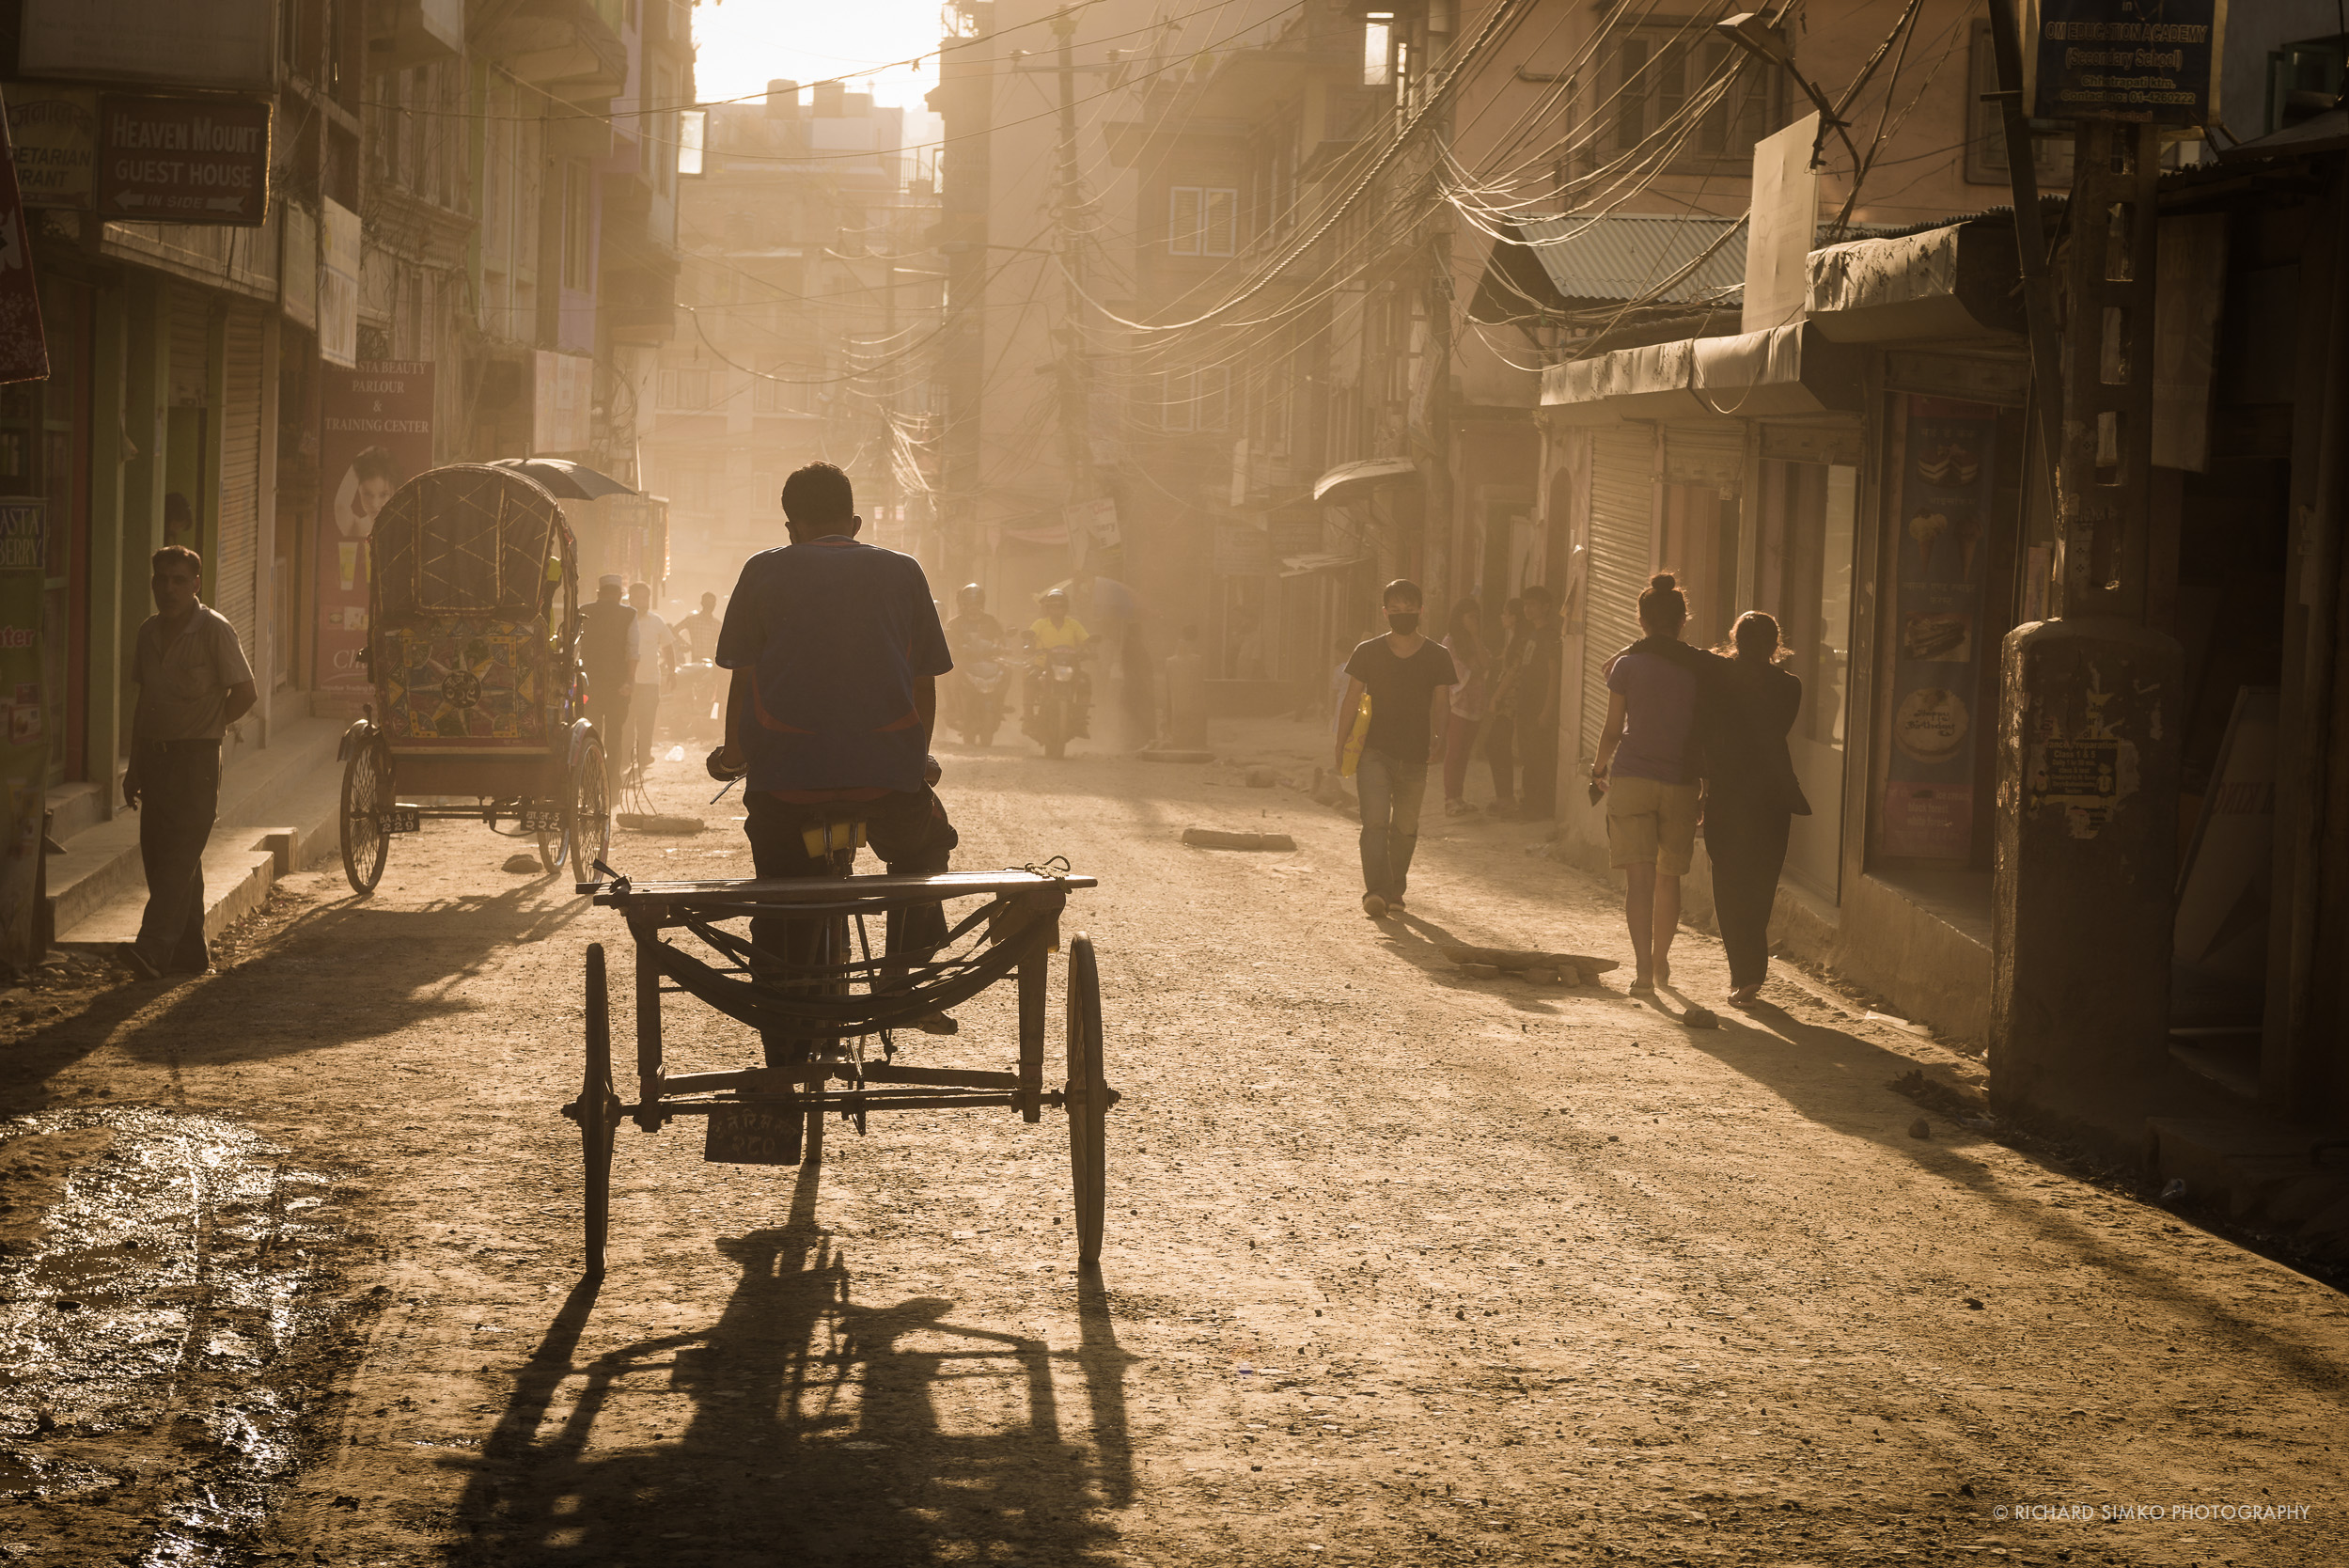 Late afternoon dust creates golden monochromatic glow in one of the dustiest streets in Kathmandu's Thamel district.